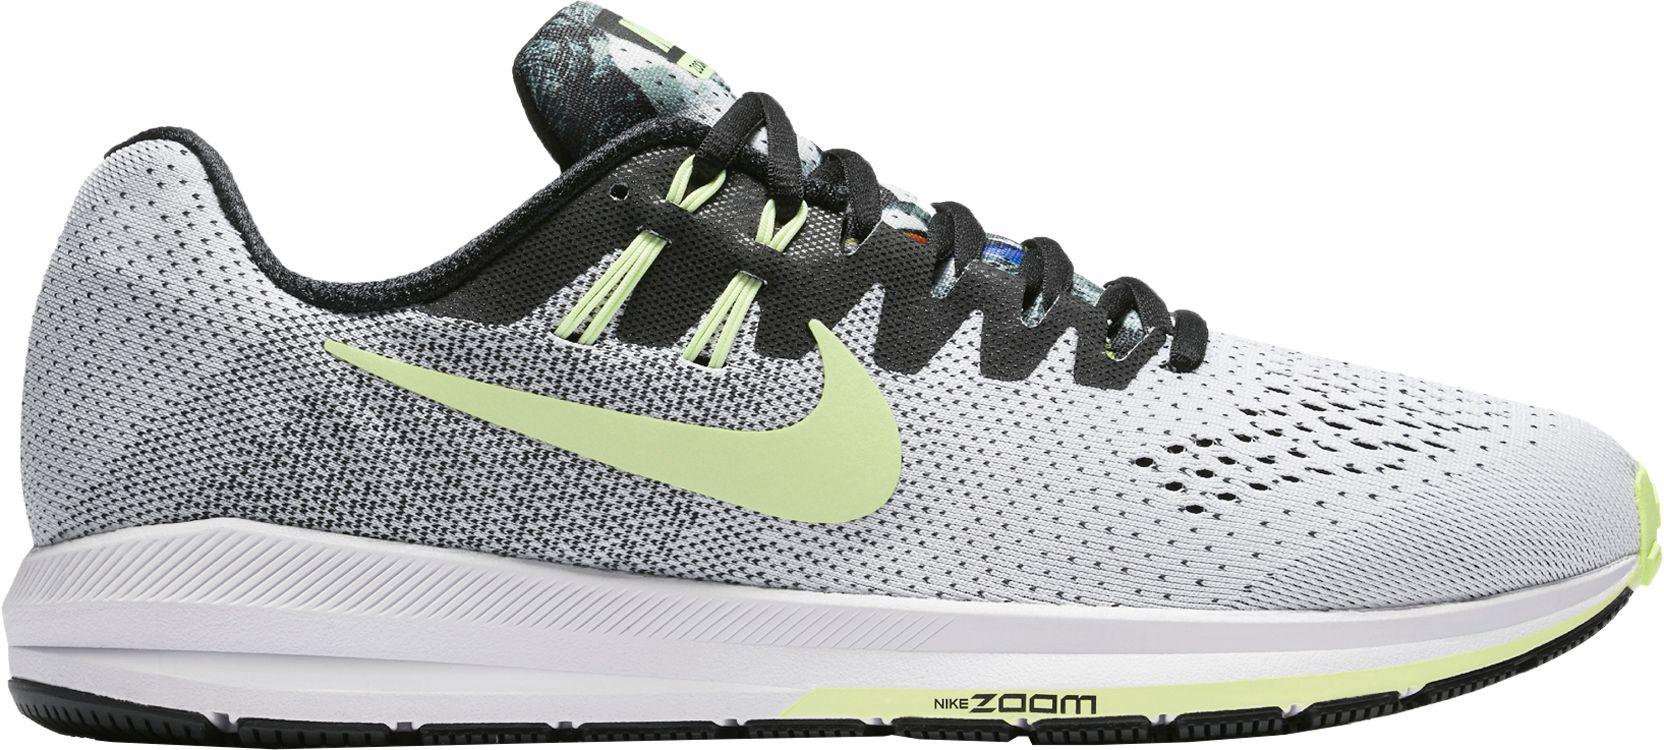 88fc0637679 Lyst - Nike Air Zoom Structure 20 Solstice for Men